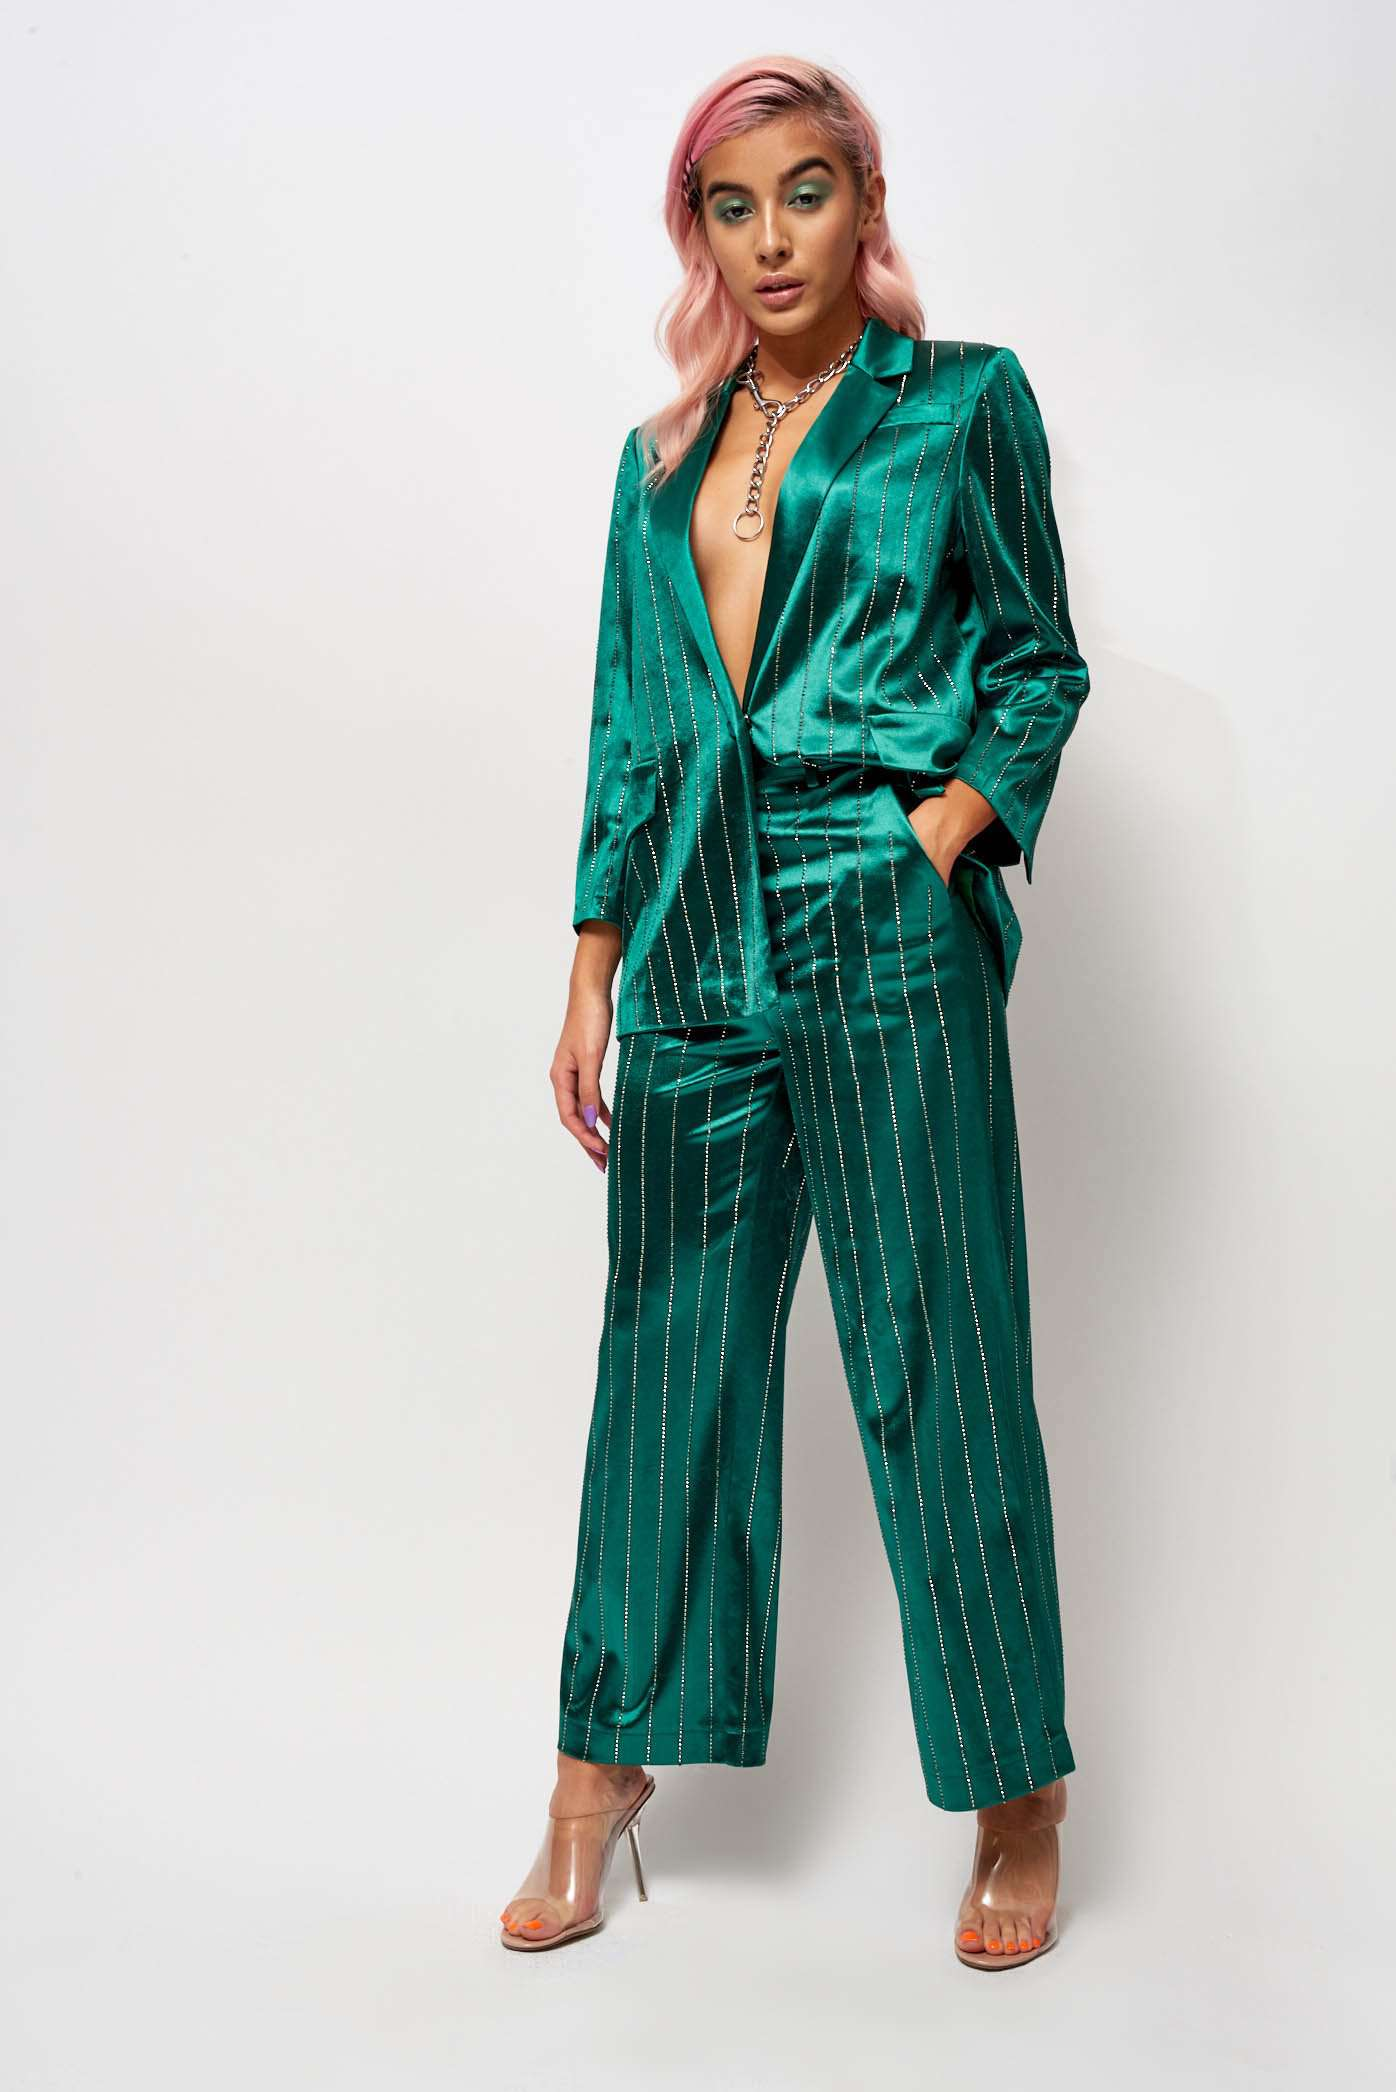 Emerald Green Rhinestone Pinstripe Suit Jacket